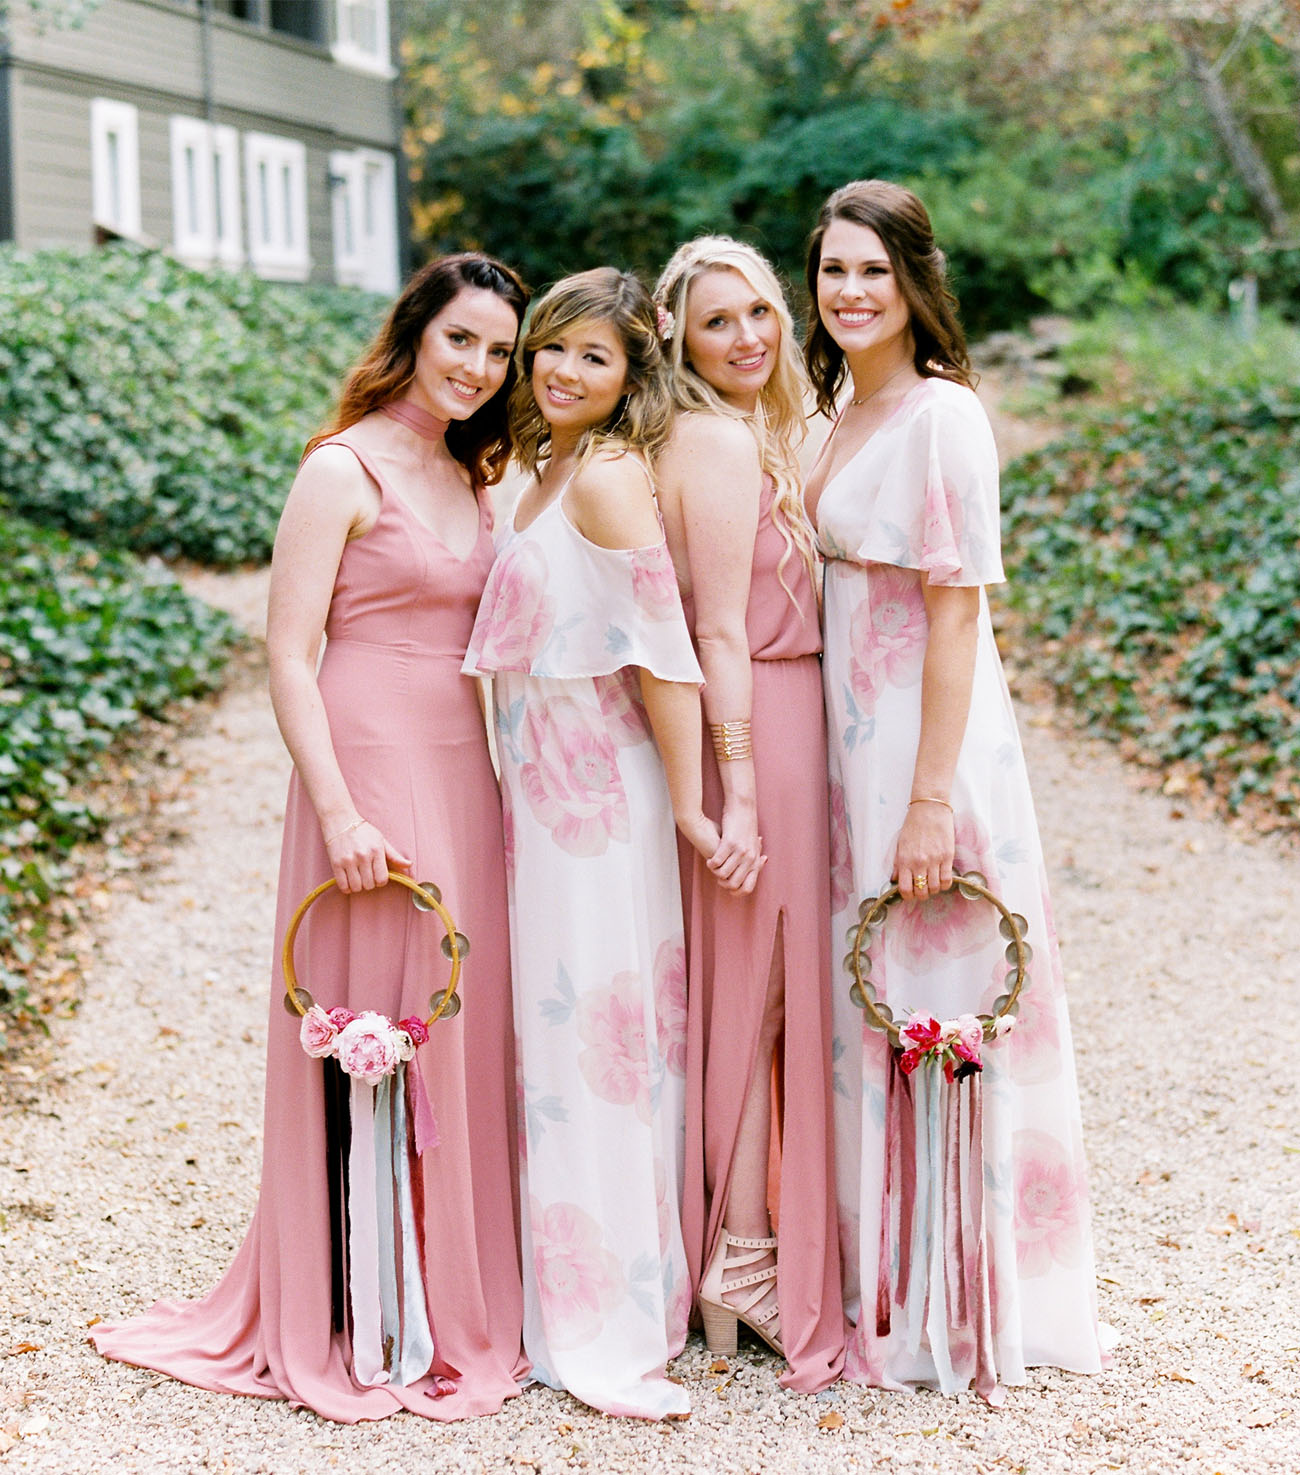 tambourines for bridesmaids